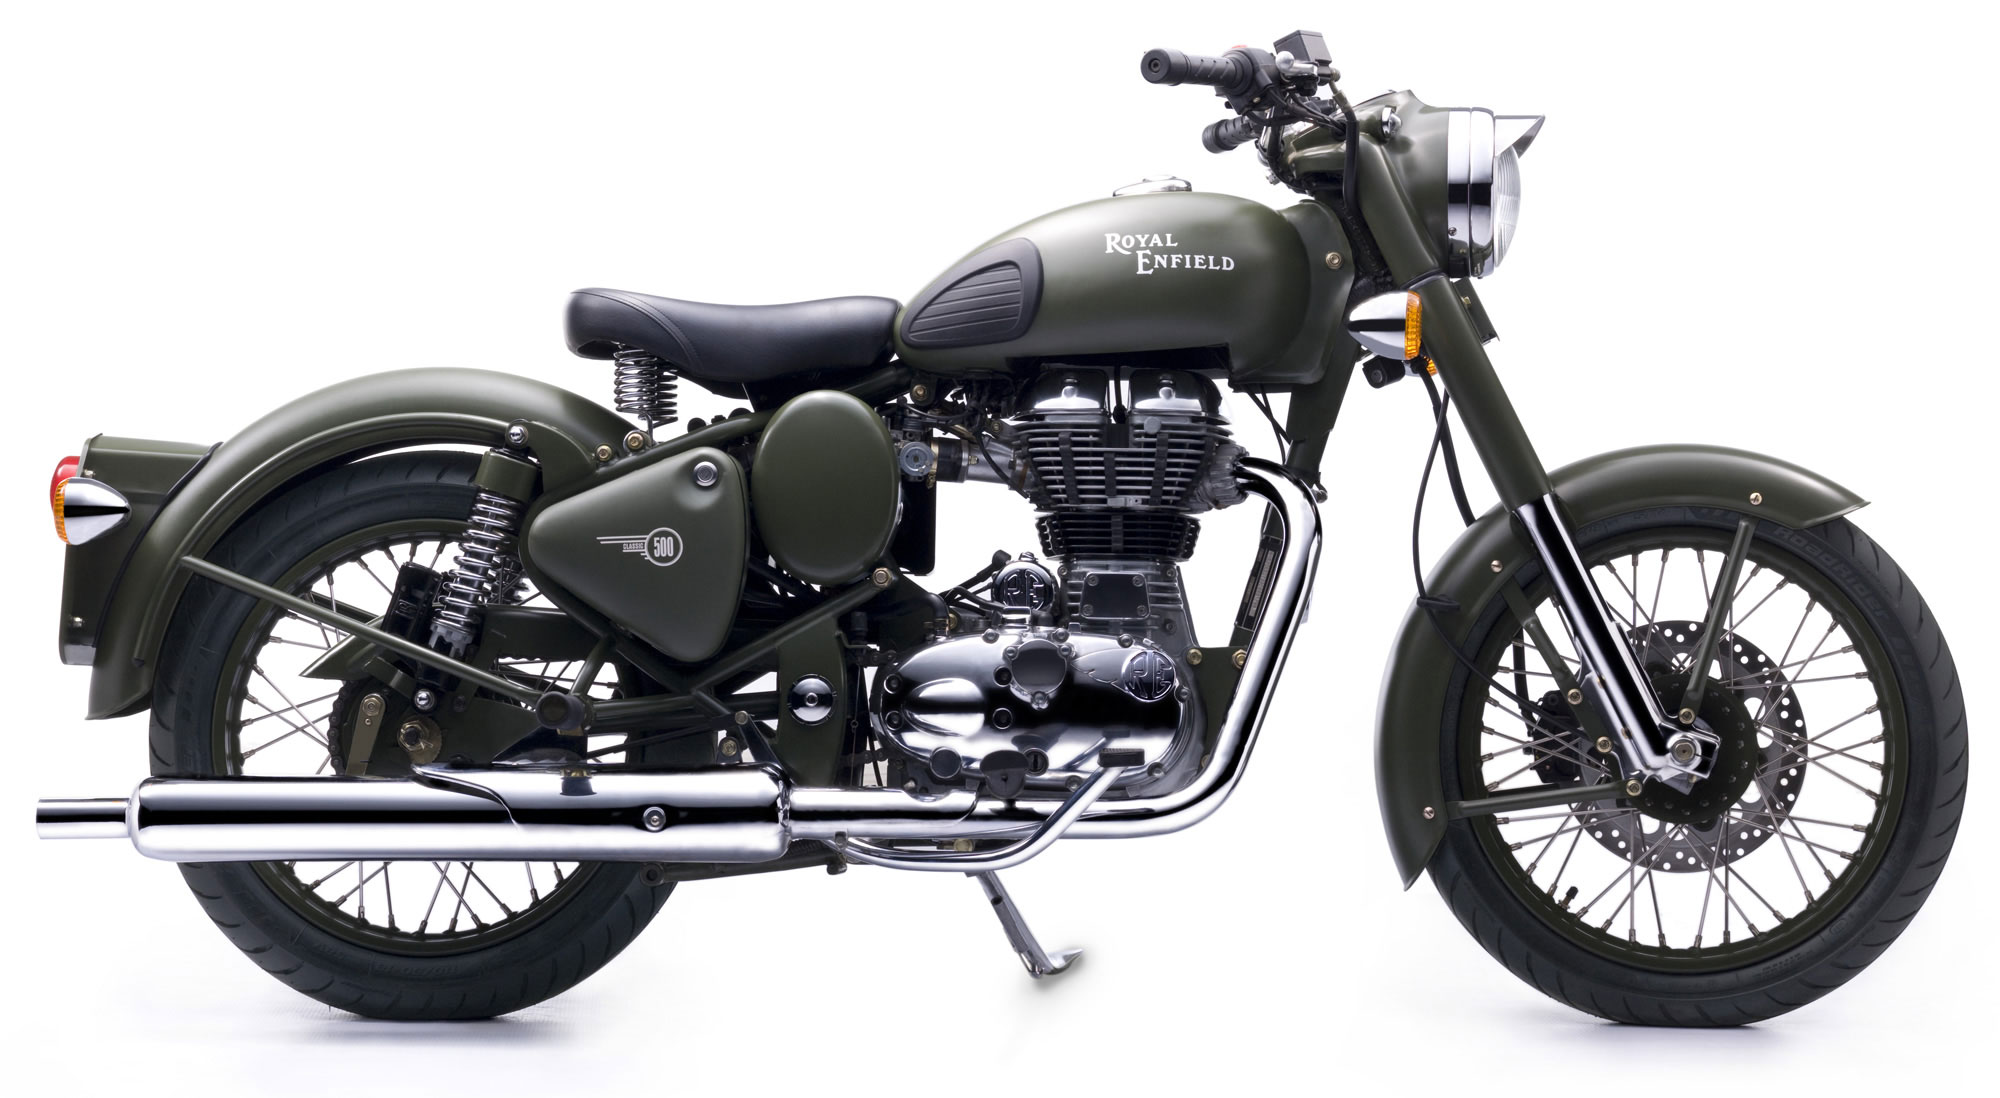 2004 Enfield Military 500 #4